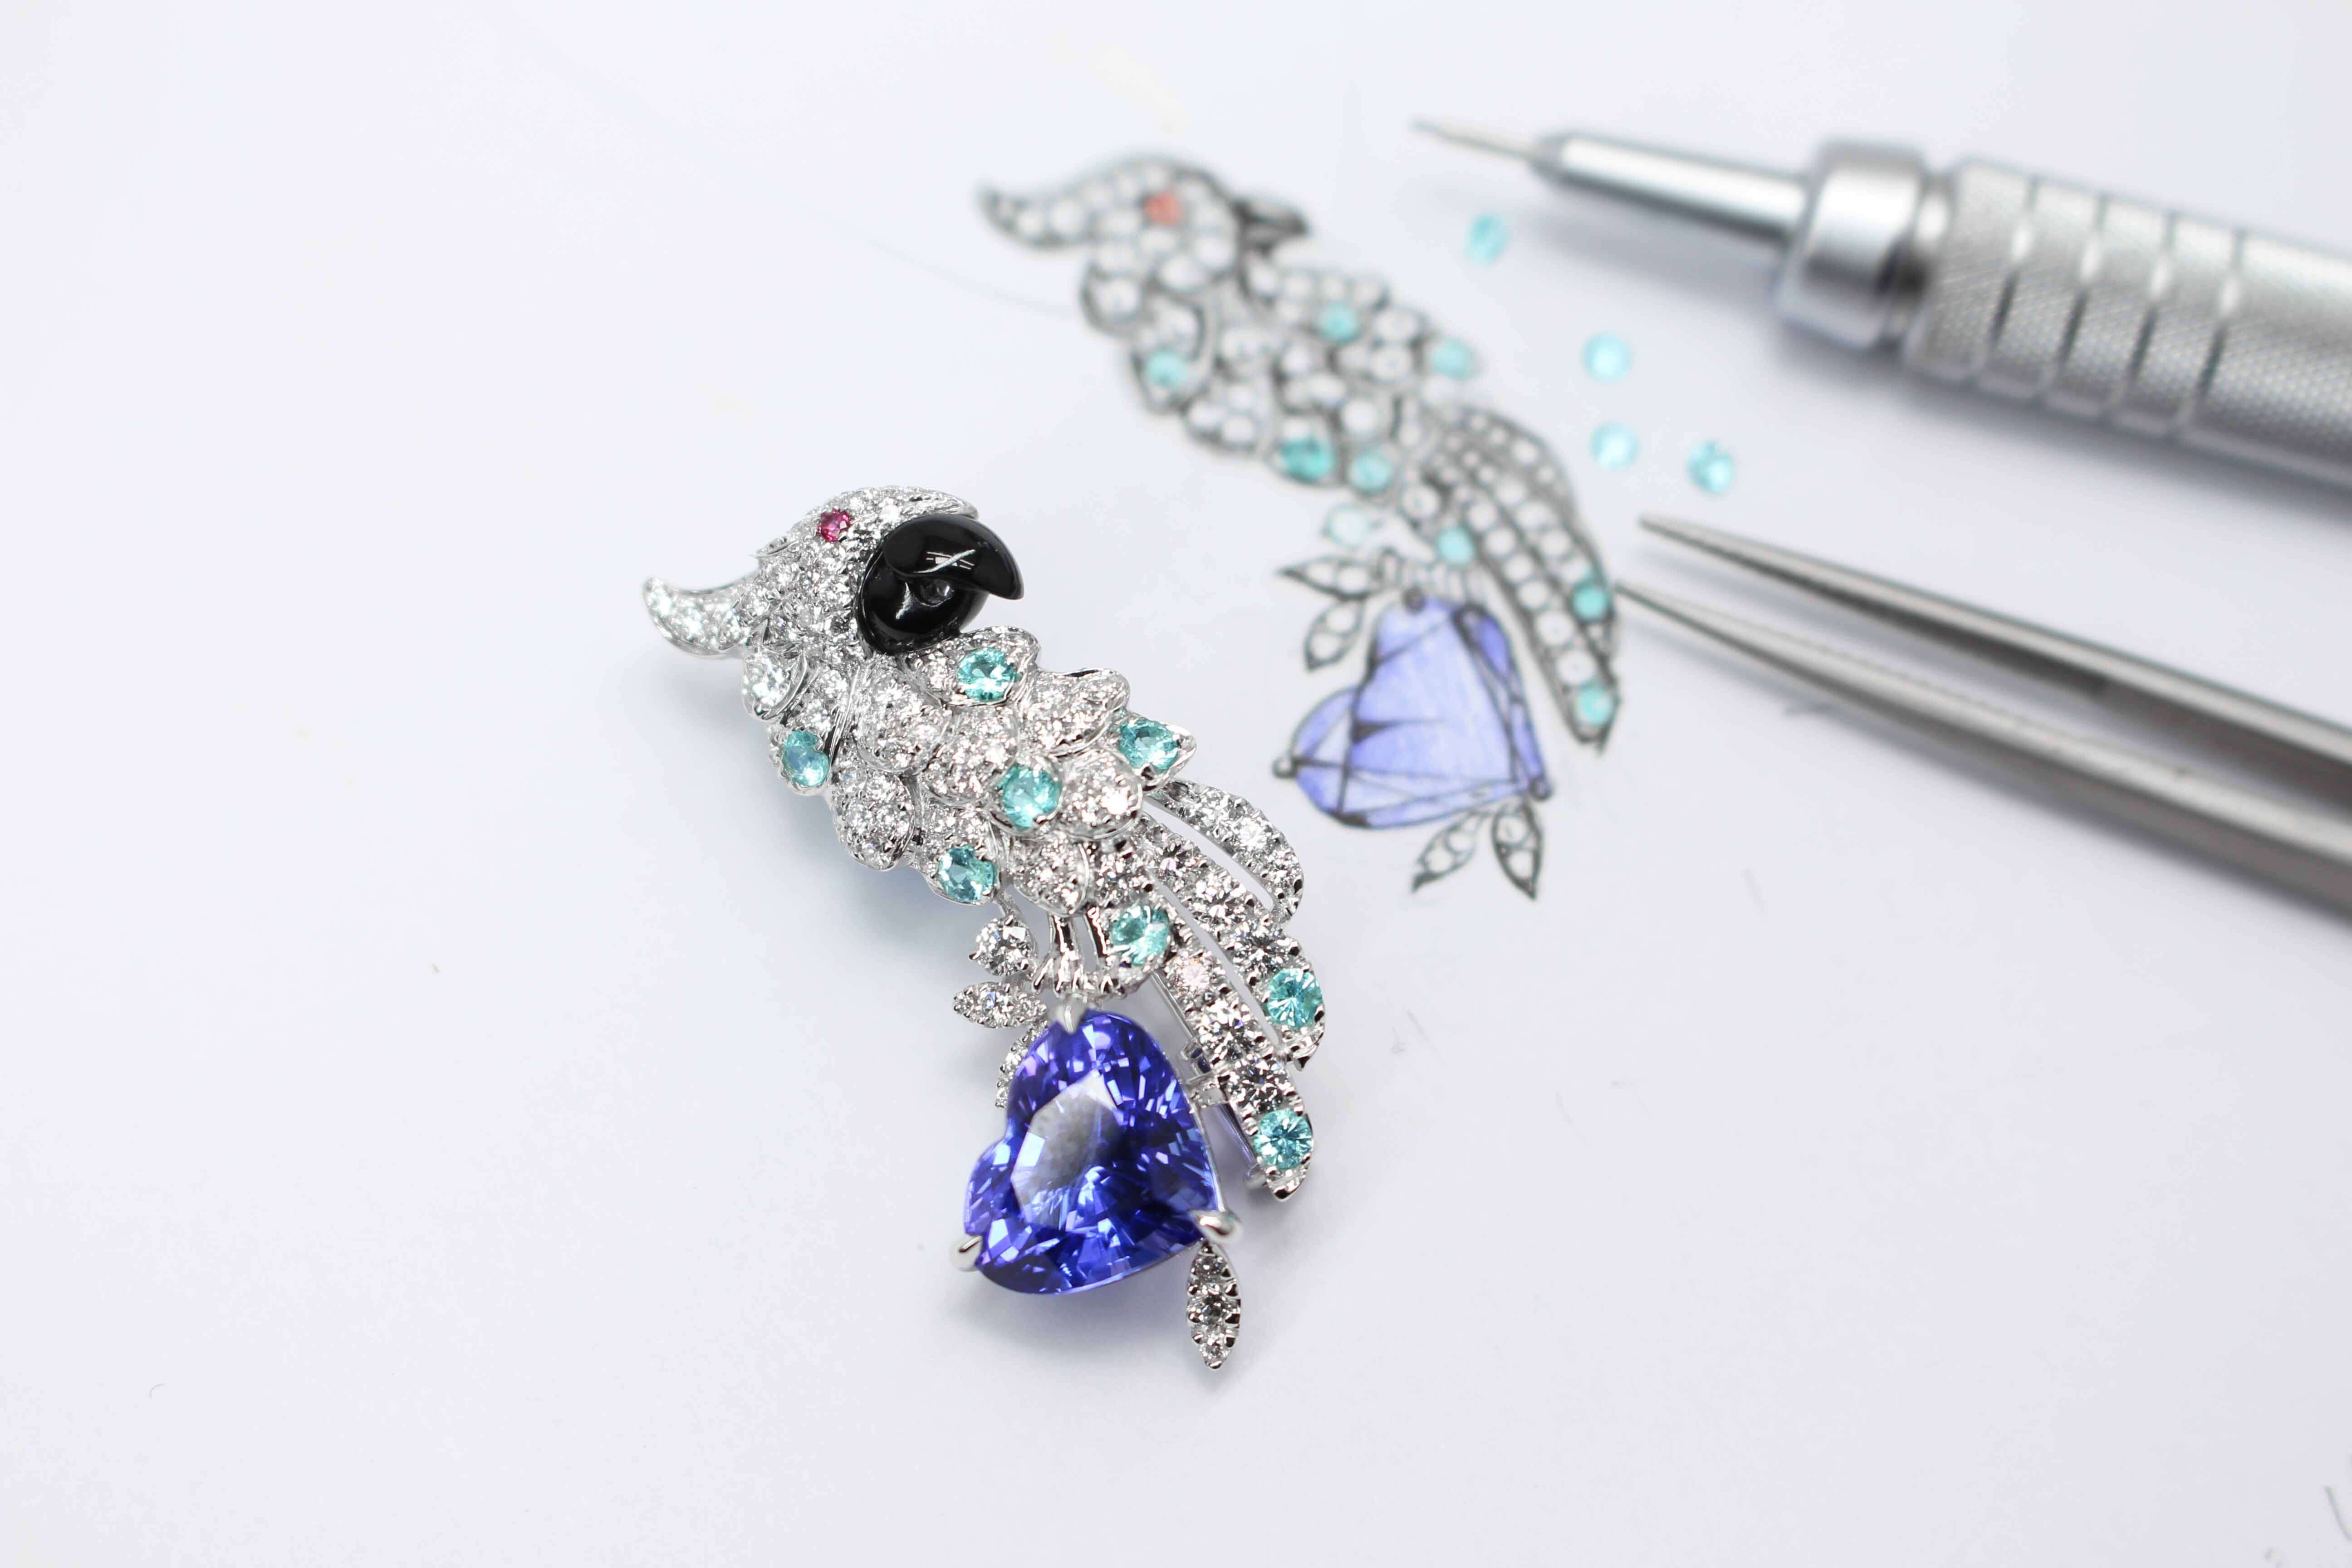 Customised Fine Jewellery in Parrot pendant and earring jewellery set. Custom set with diamonds, brazil paraiba tourmaline and tanzanite coloured gemstones | Local Singapore Private Jewellery in customised fine jewelley